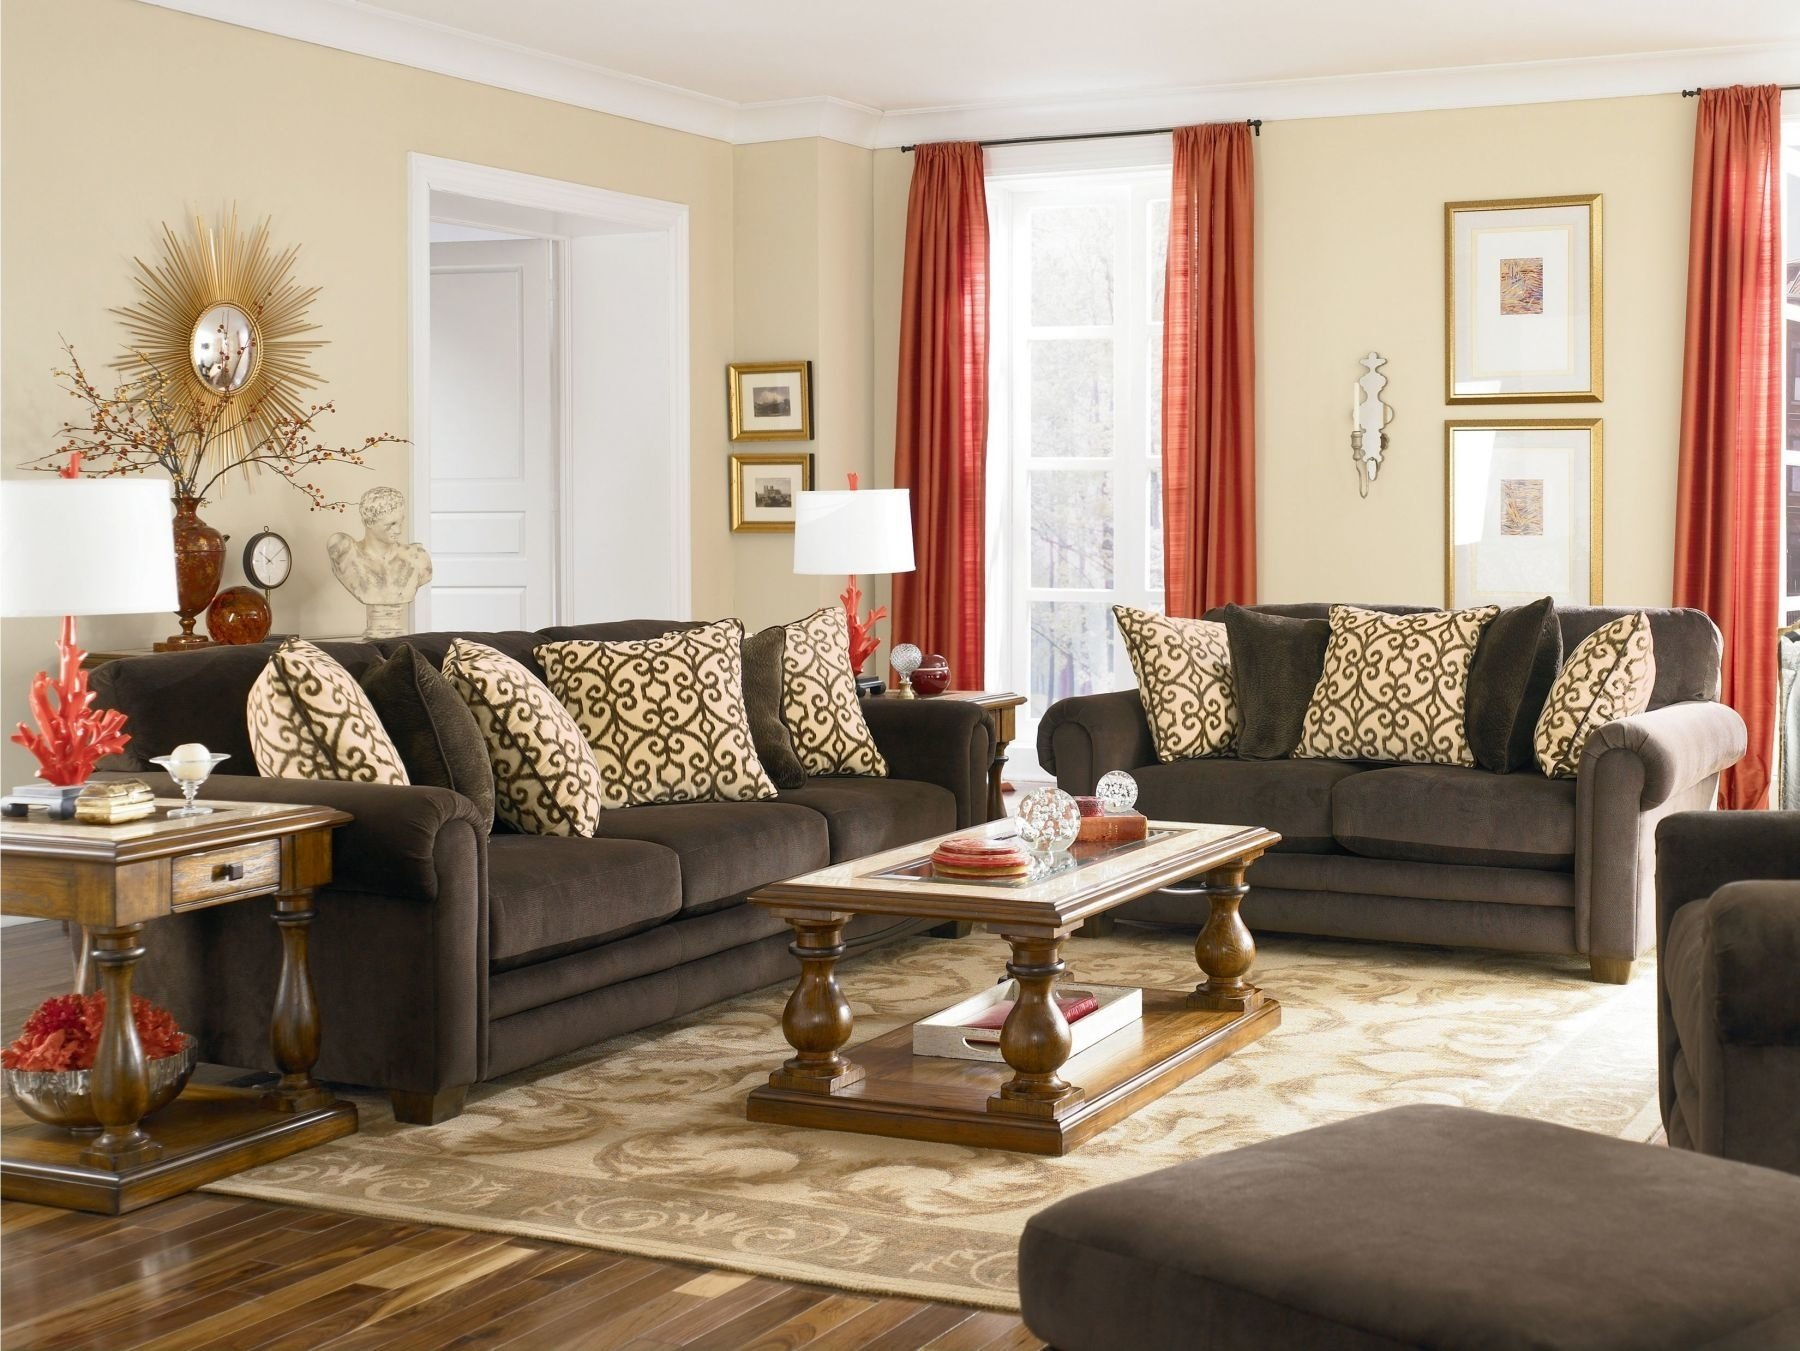 10 Best Red And Brown Living Room Ideas decor brown to inspiration and red living room ideas fascinating 2020